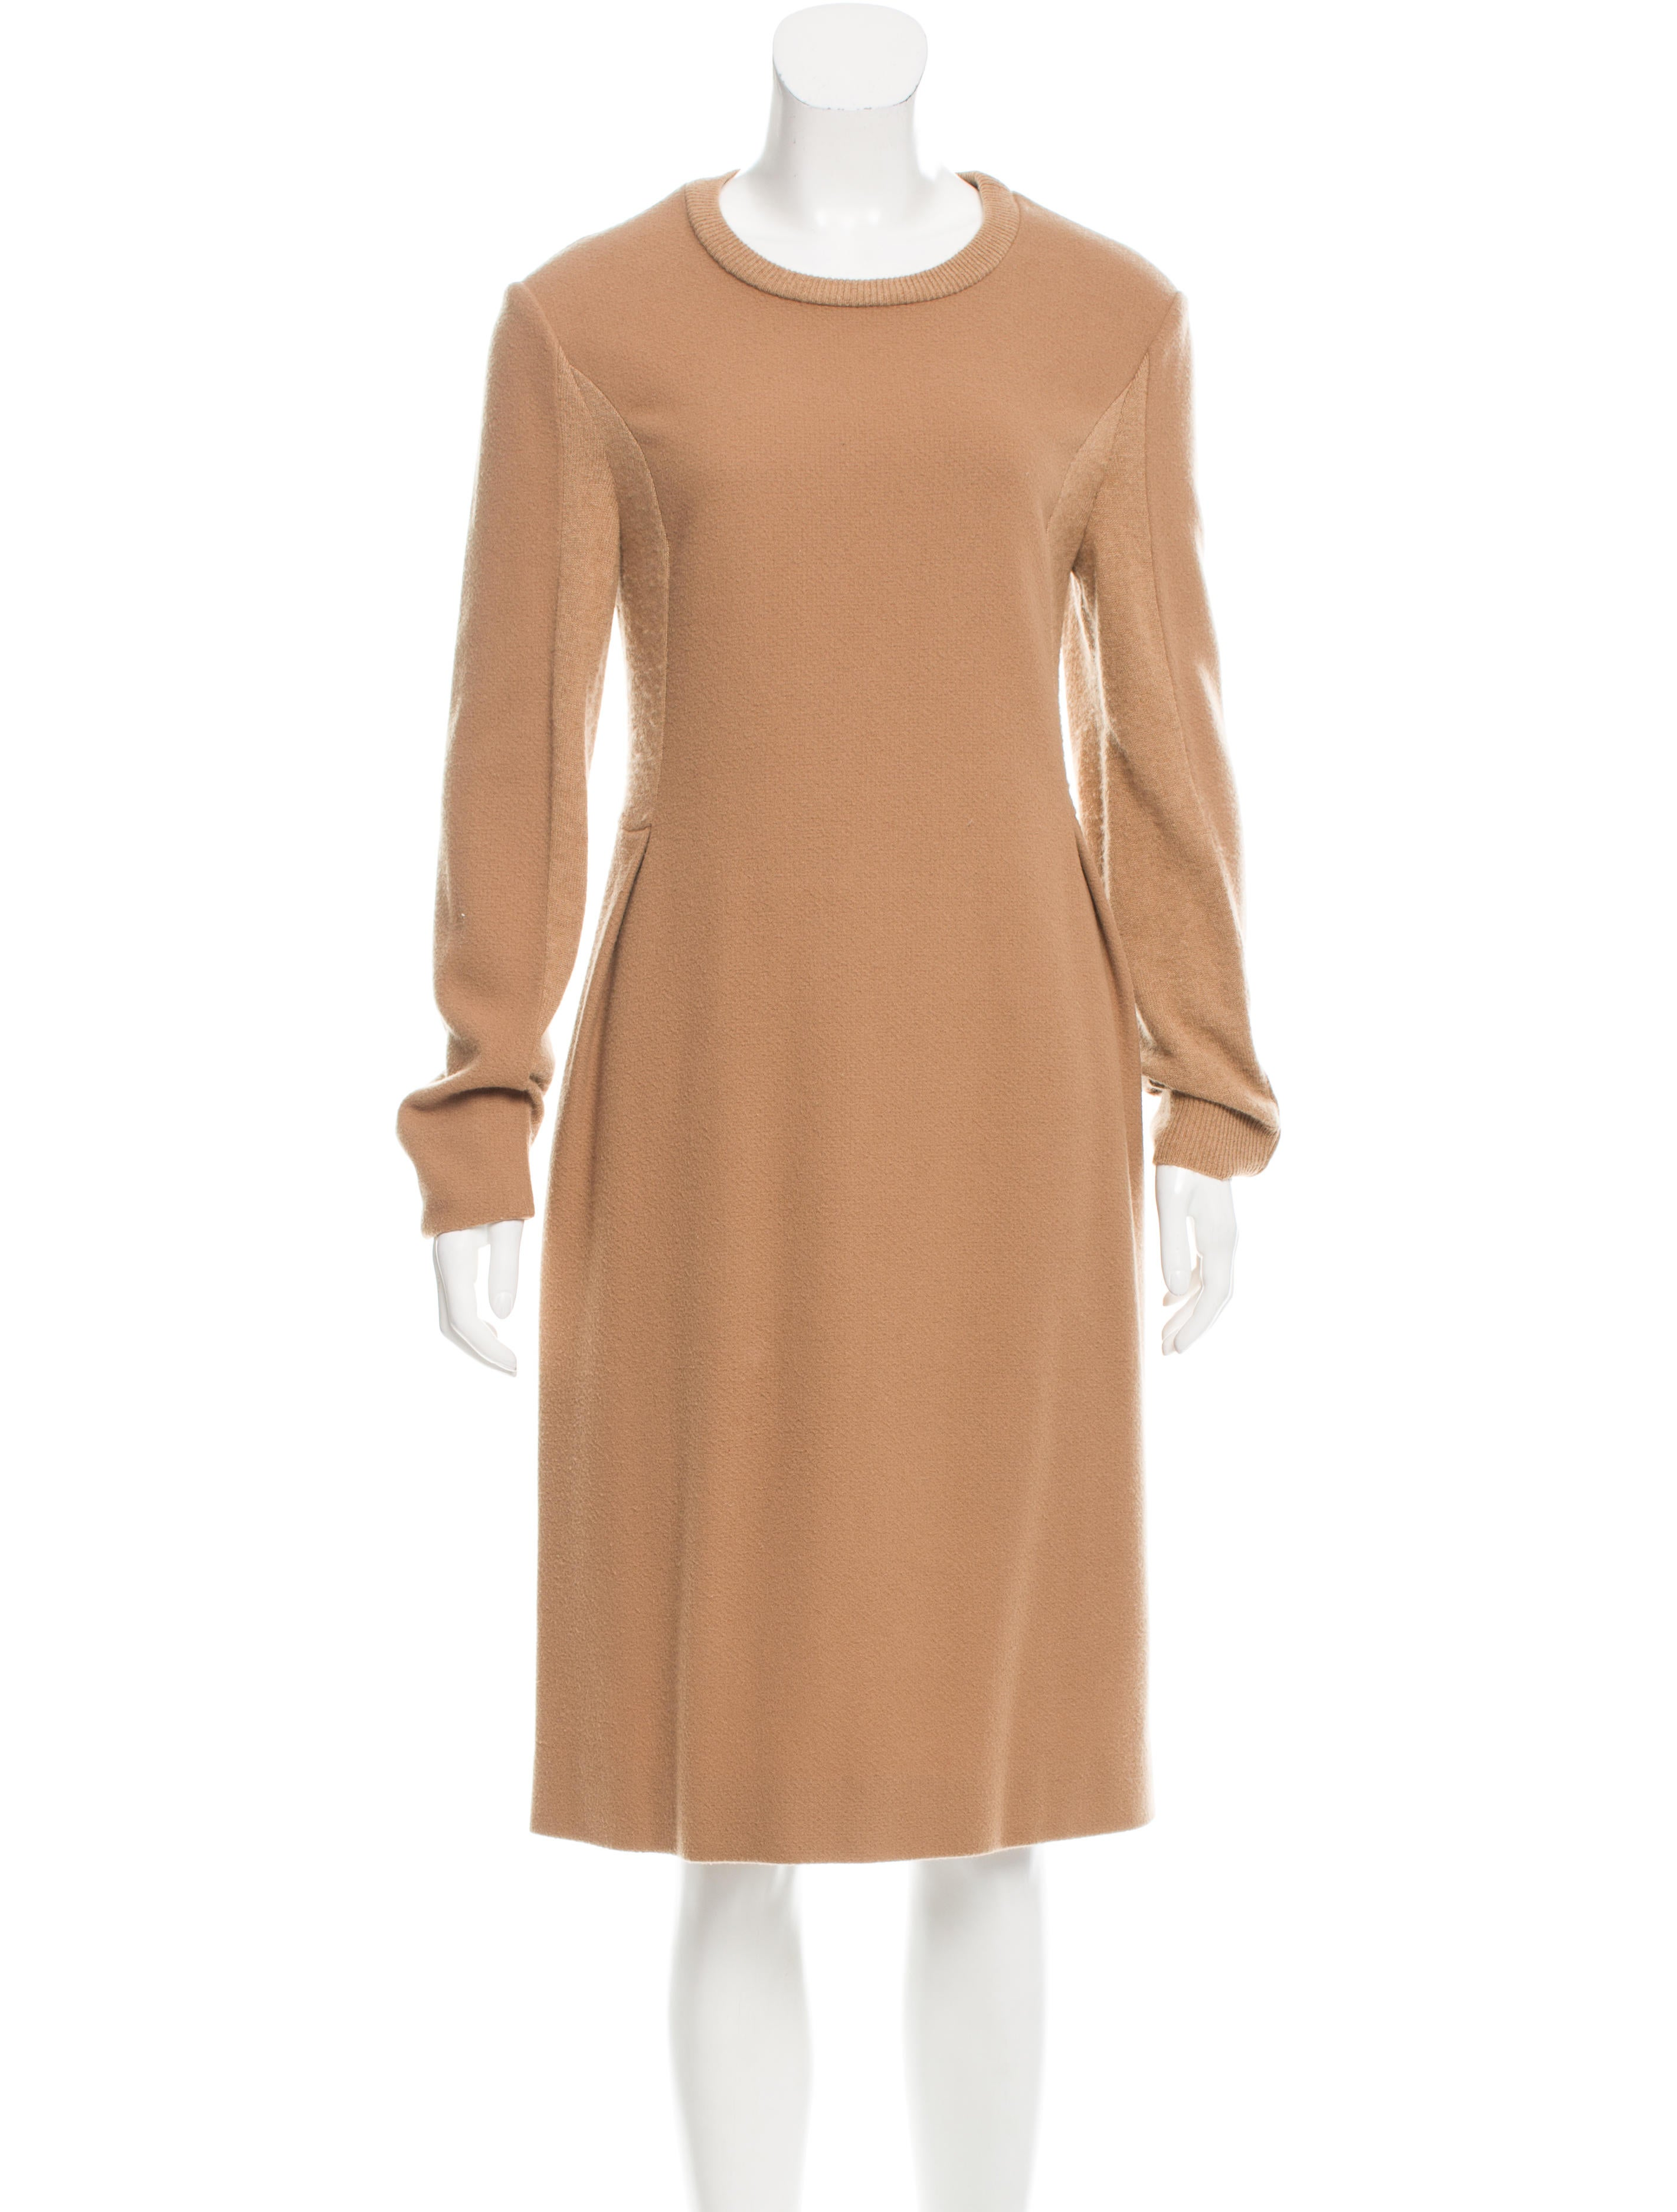 Chlou00e9 Wool Sweater Dress - Clothing - CHL53468 | The RealReal